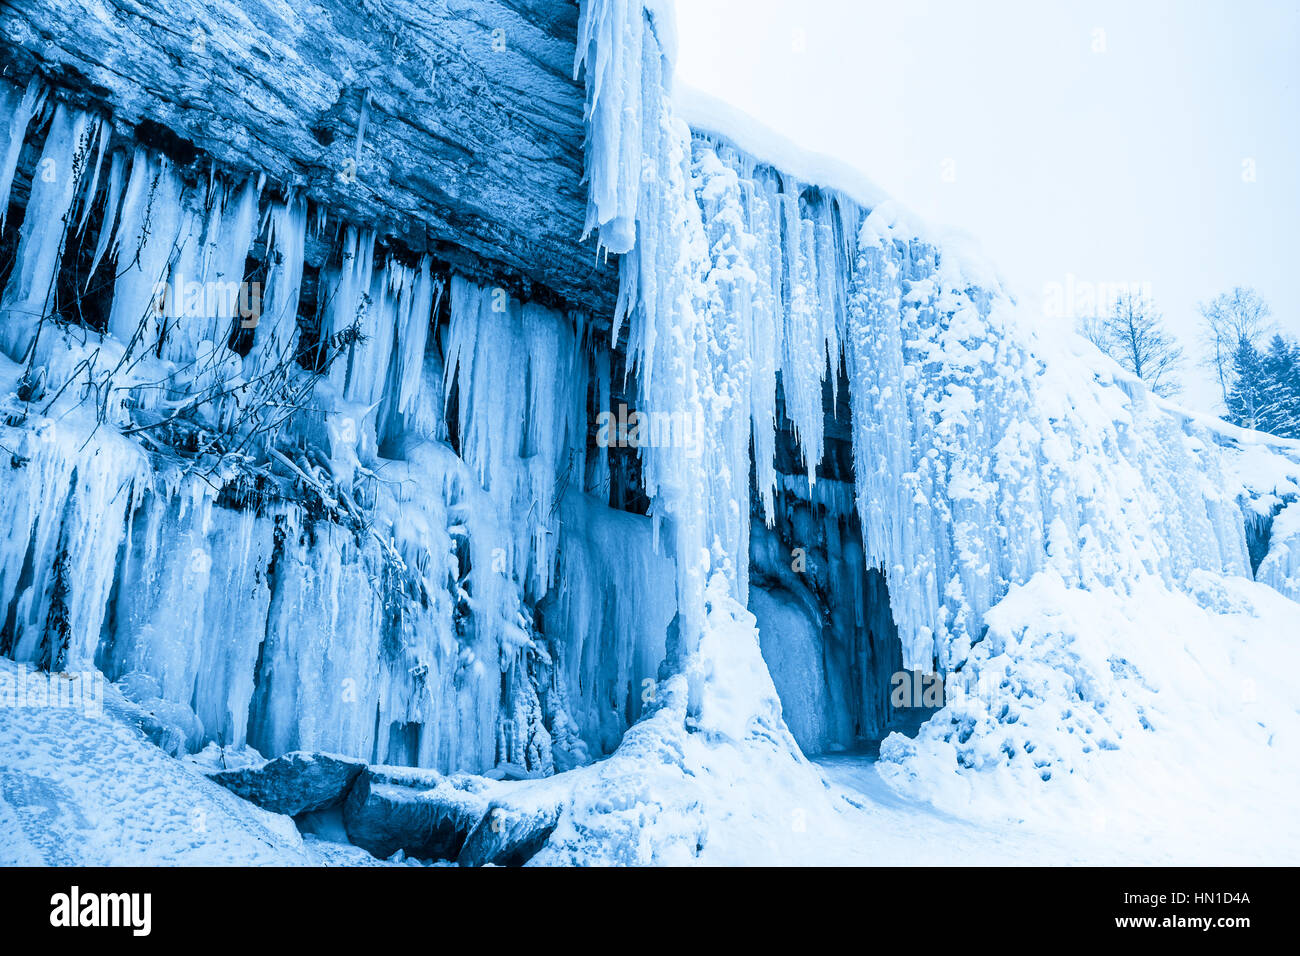 Ice cave in frozen waterfall Jagala, Estonia - Stock Image